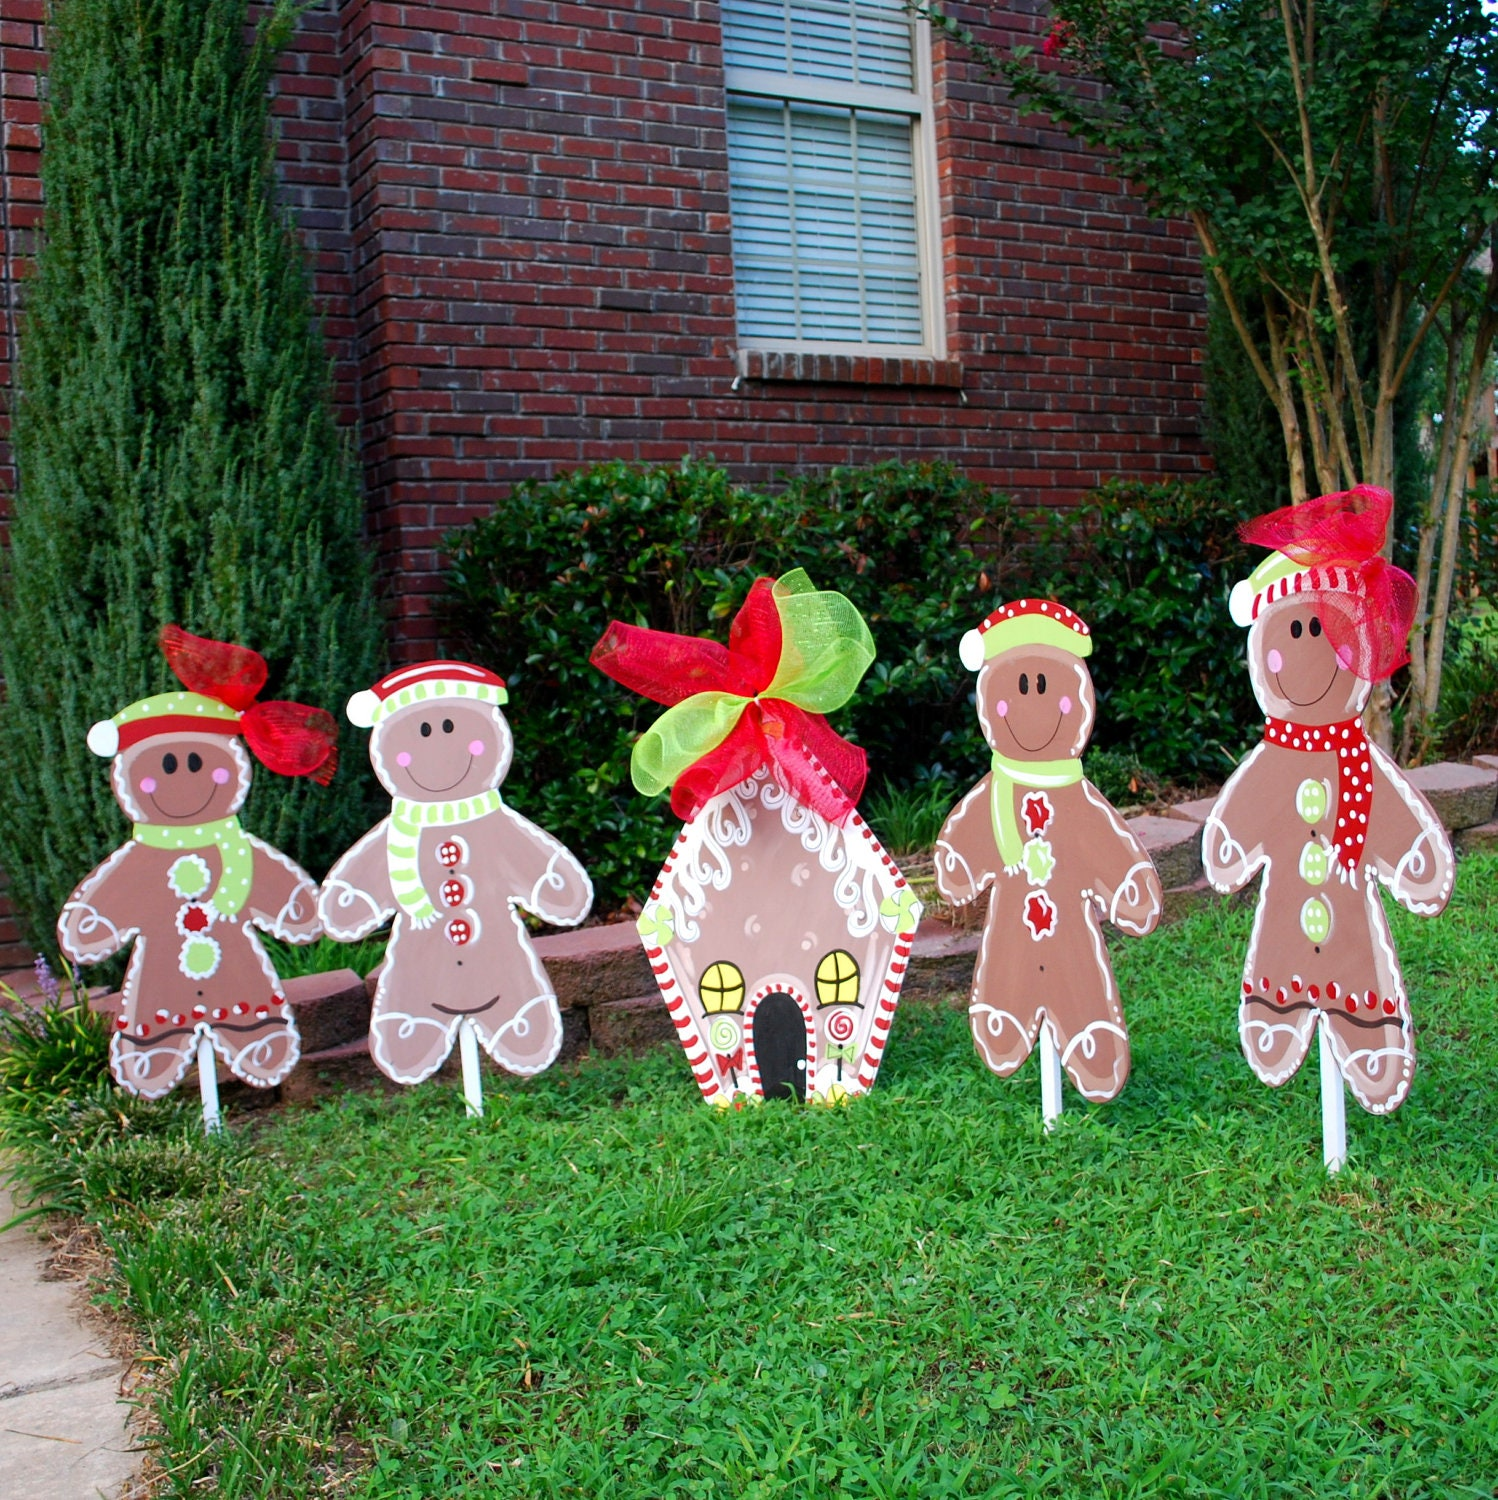 Christmas Yard Decor Gingerbread Man Christmas By: wooden outdoor christmas decorations